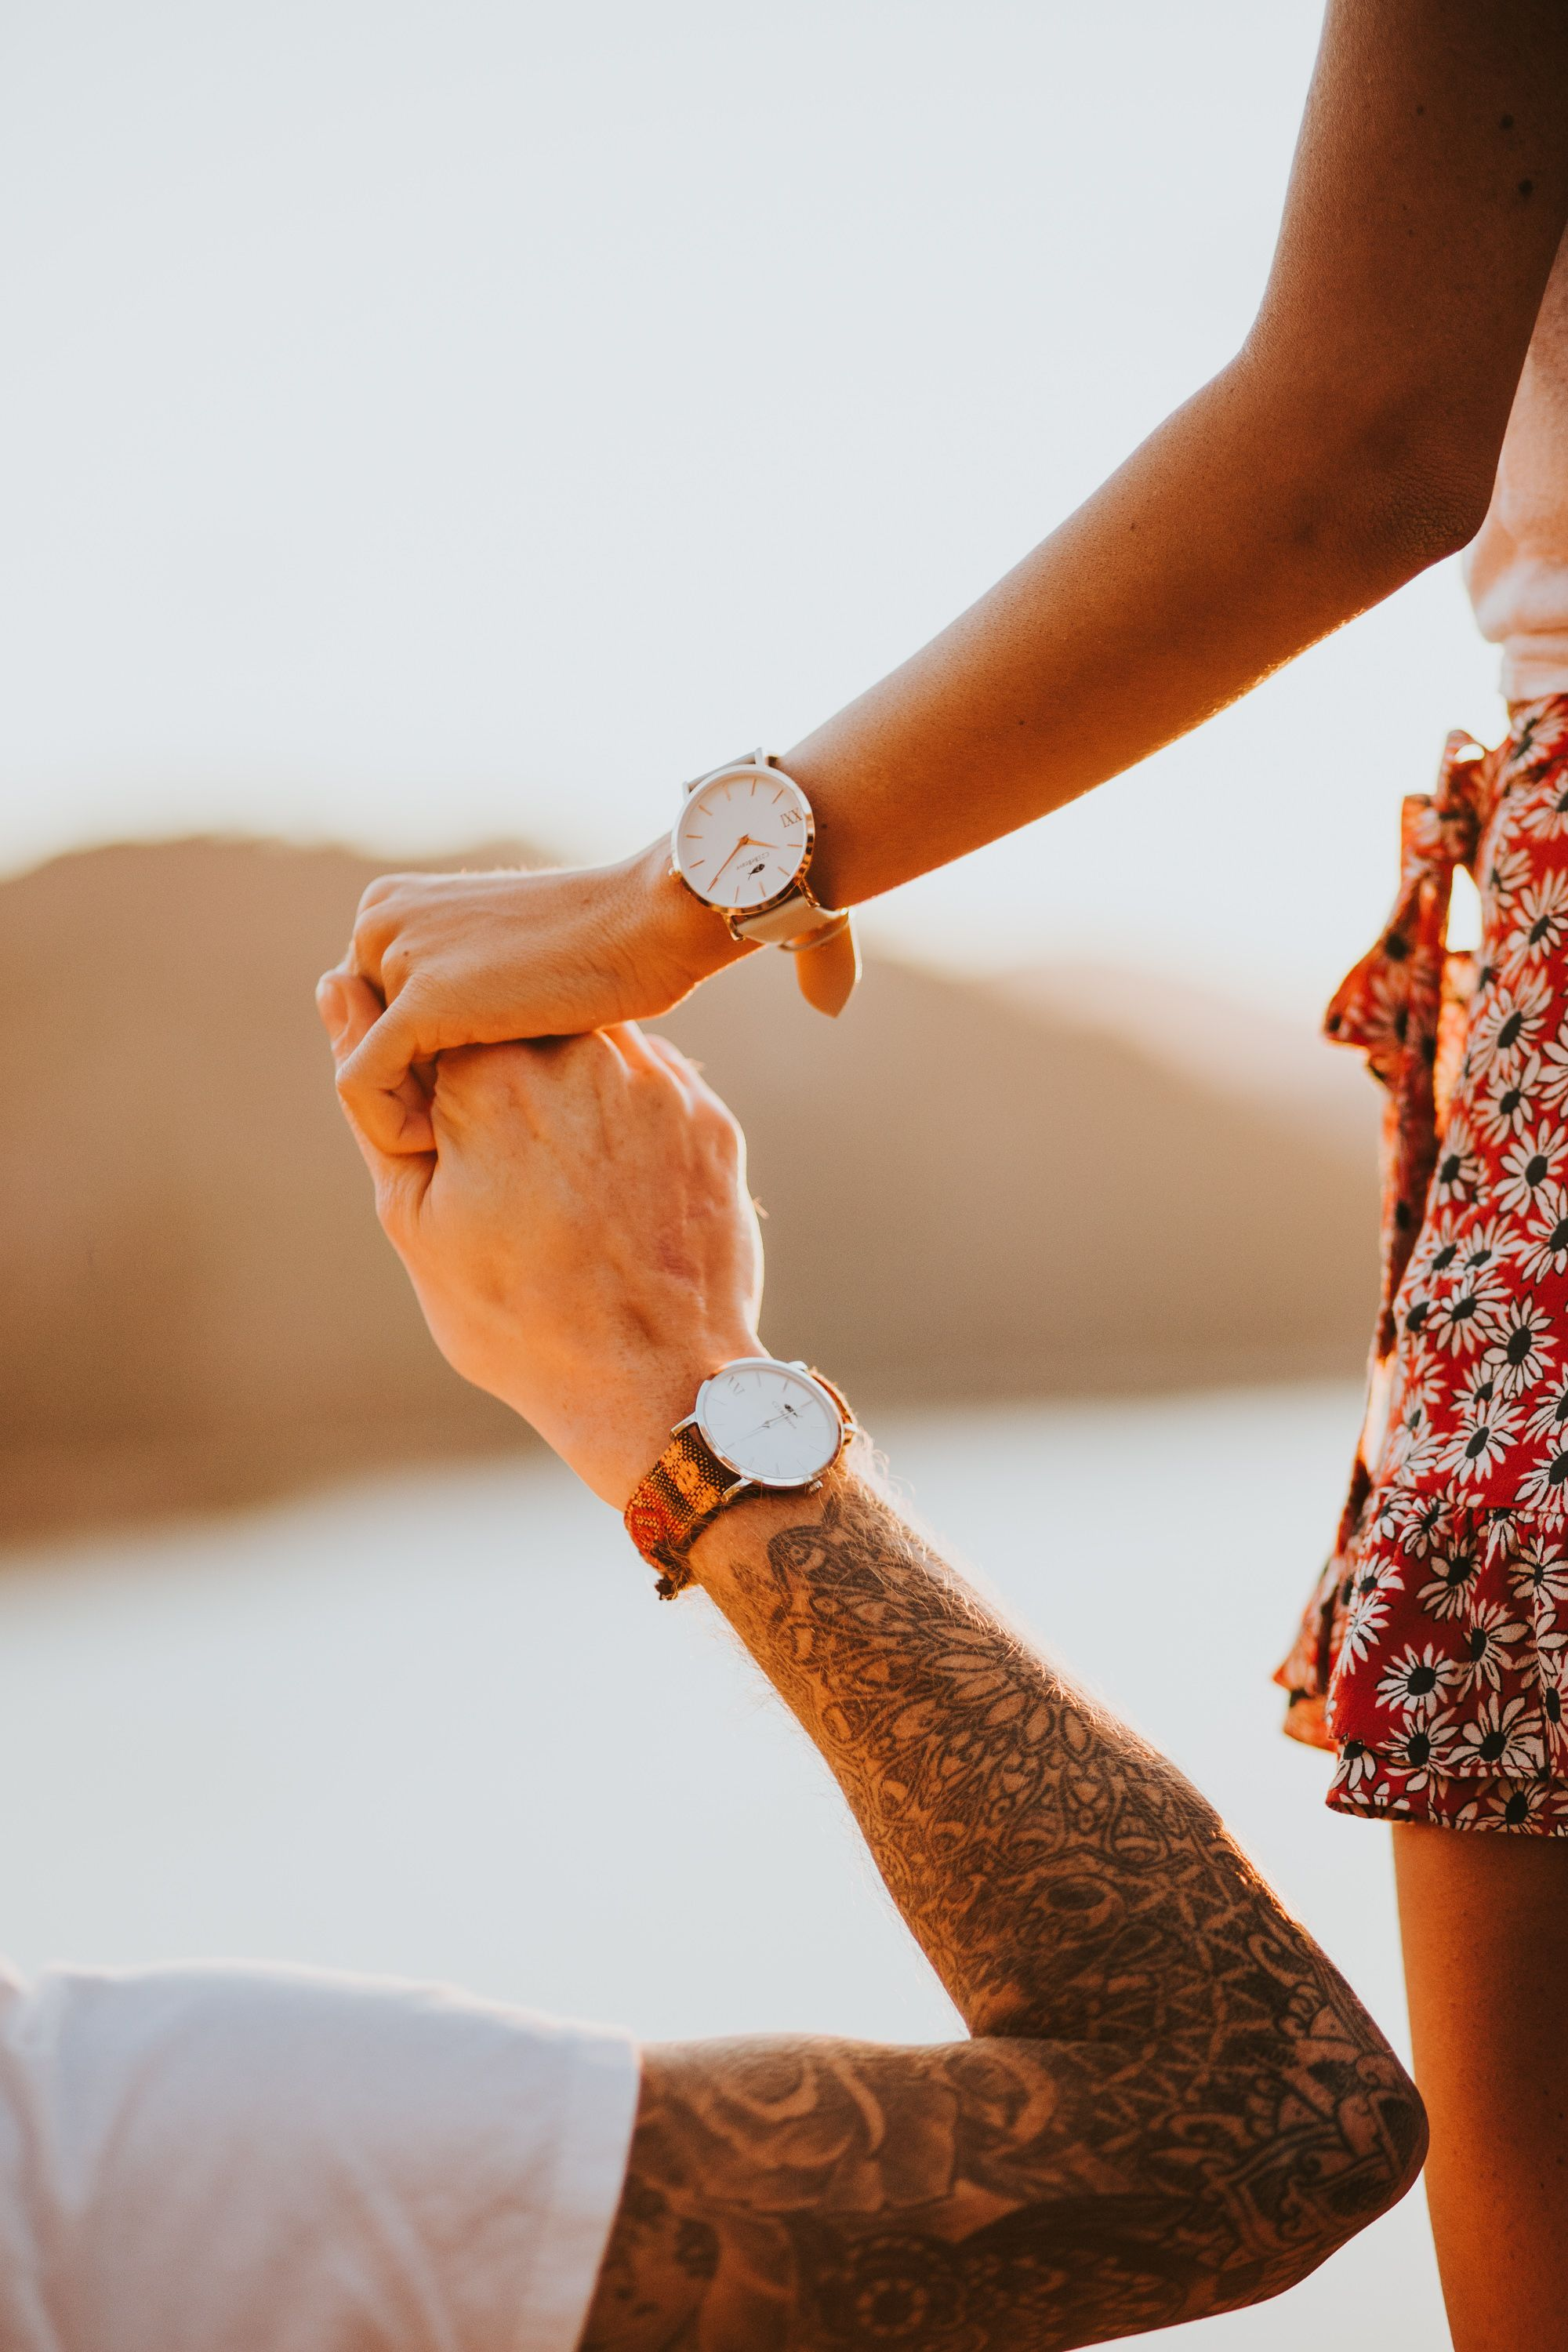 C21BEBRAVE. Relojes etnicos. Relojes de malla. Para él, para ella.  Ethnic watches. For him, for her. Best present for both of you.